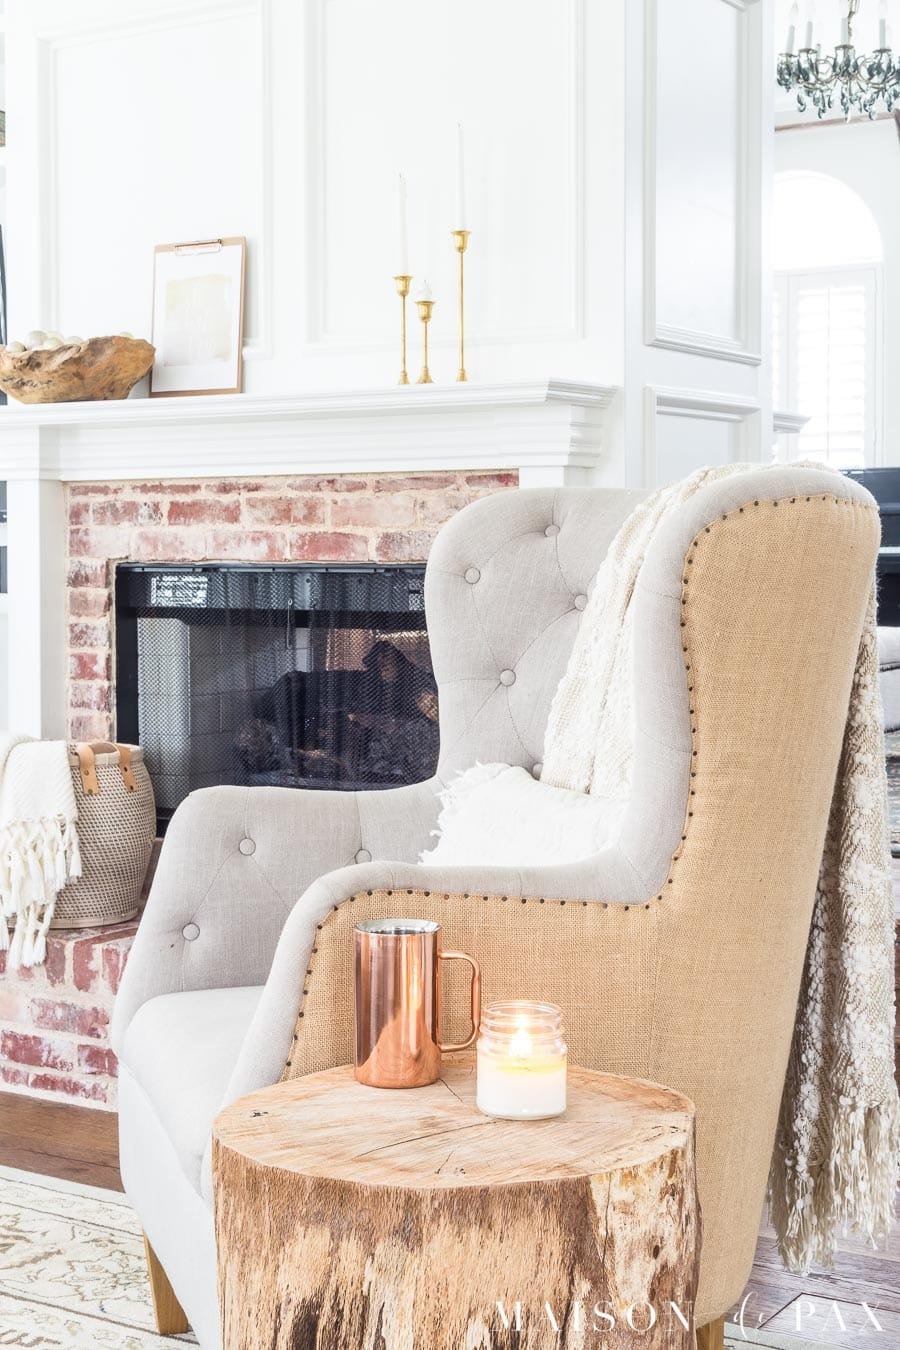 tufted armchair with log side table before a firplace with antique brick and white molding, all accented with gold and copper